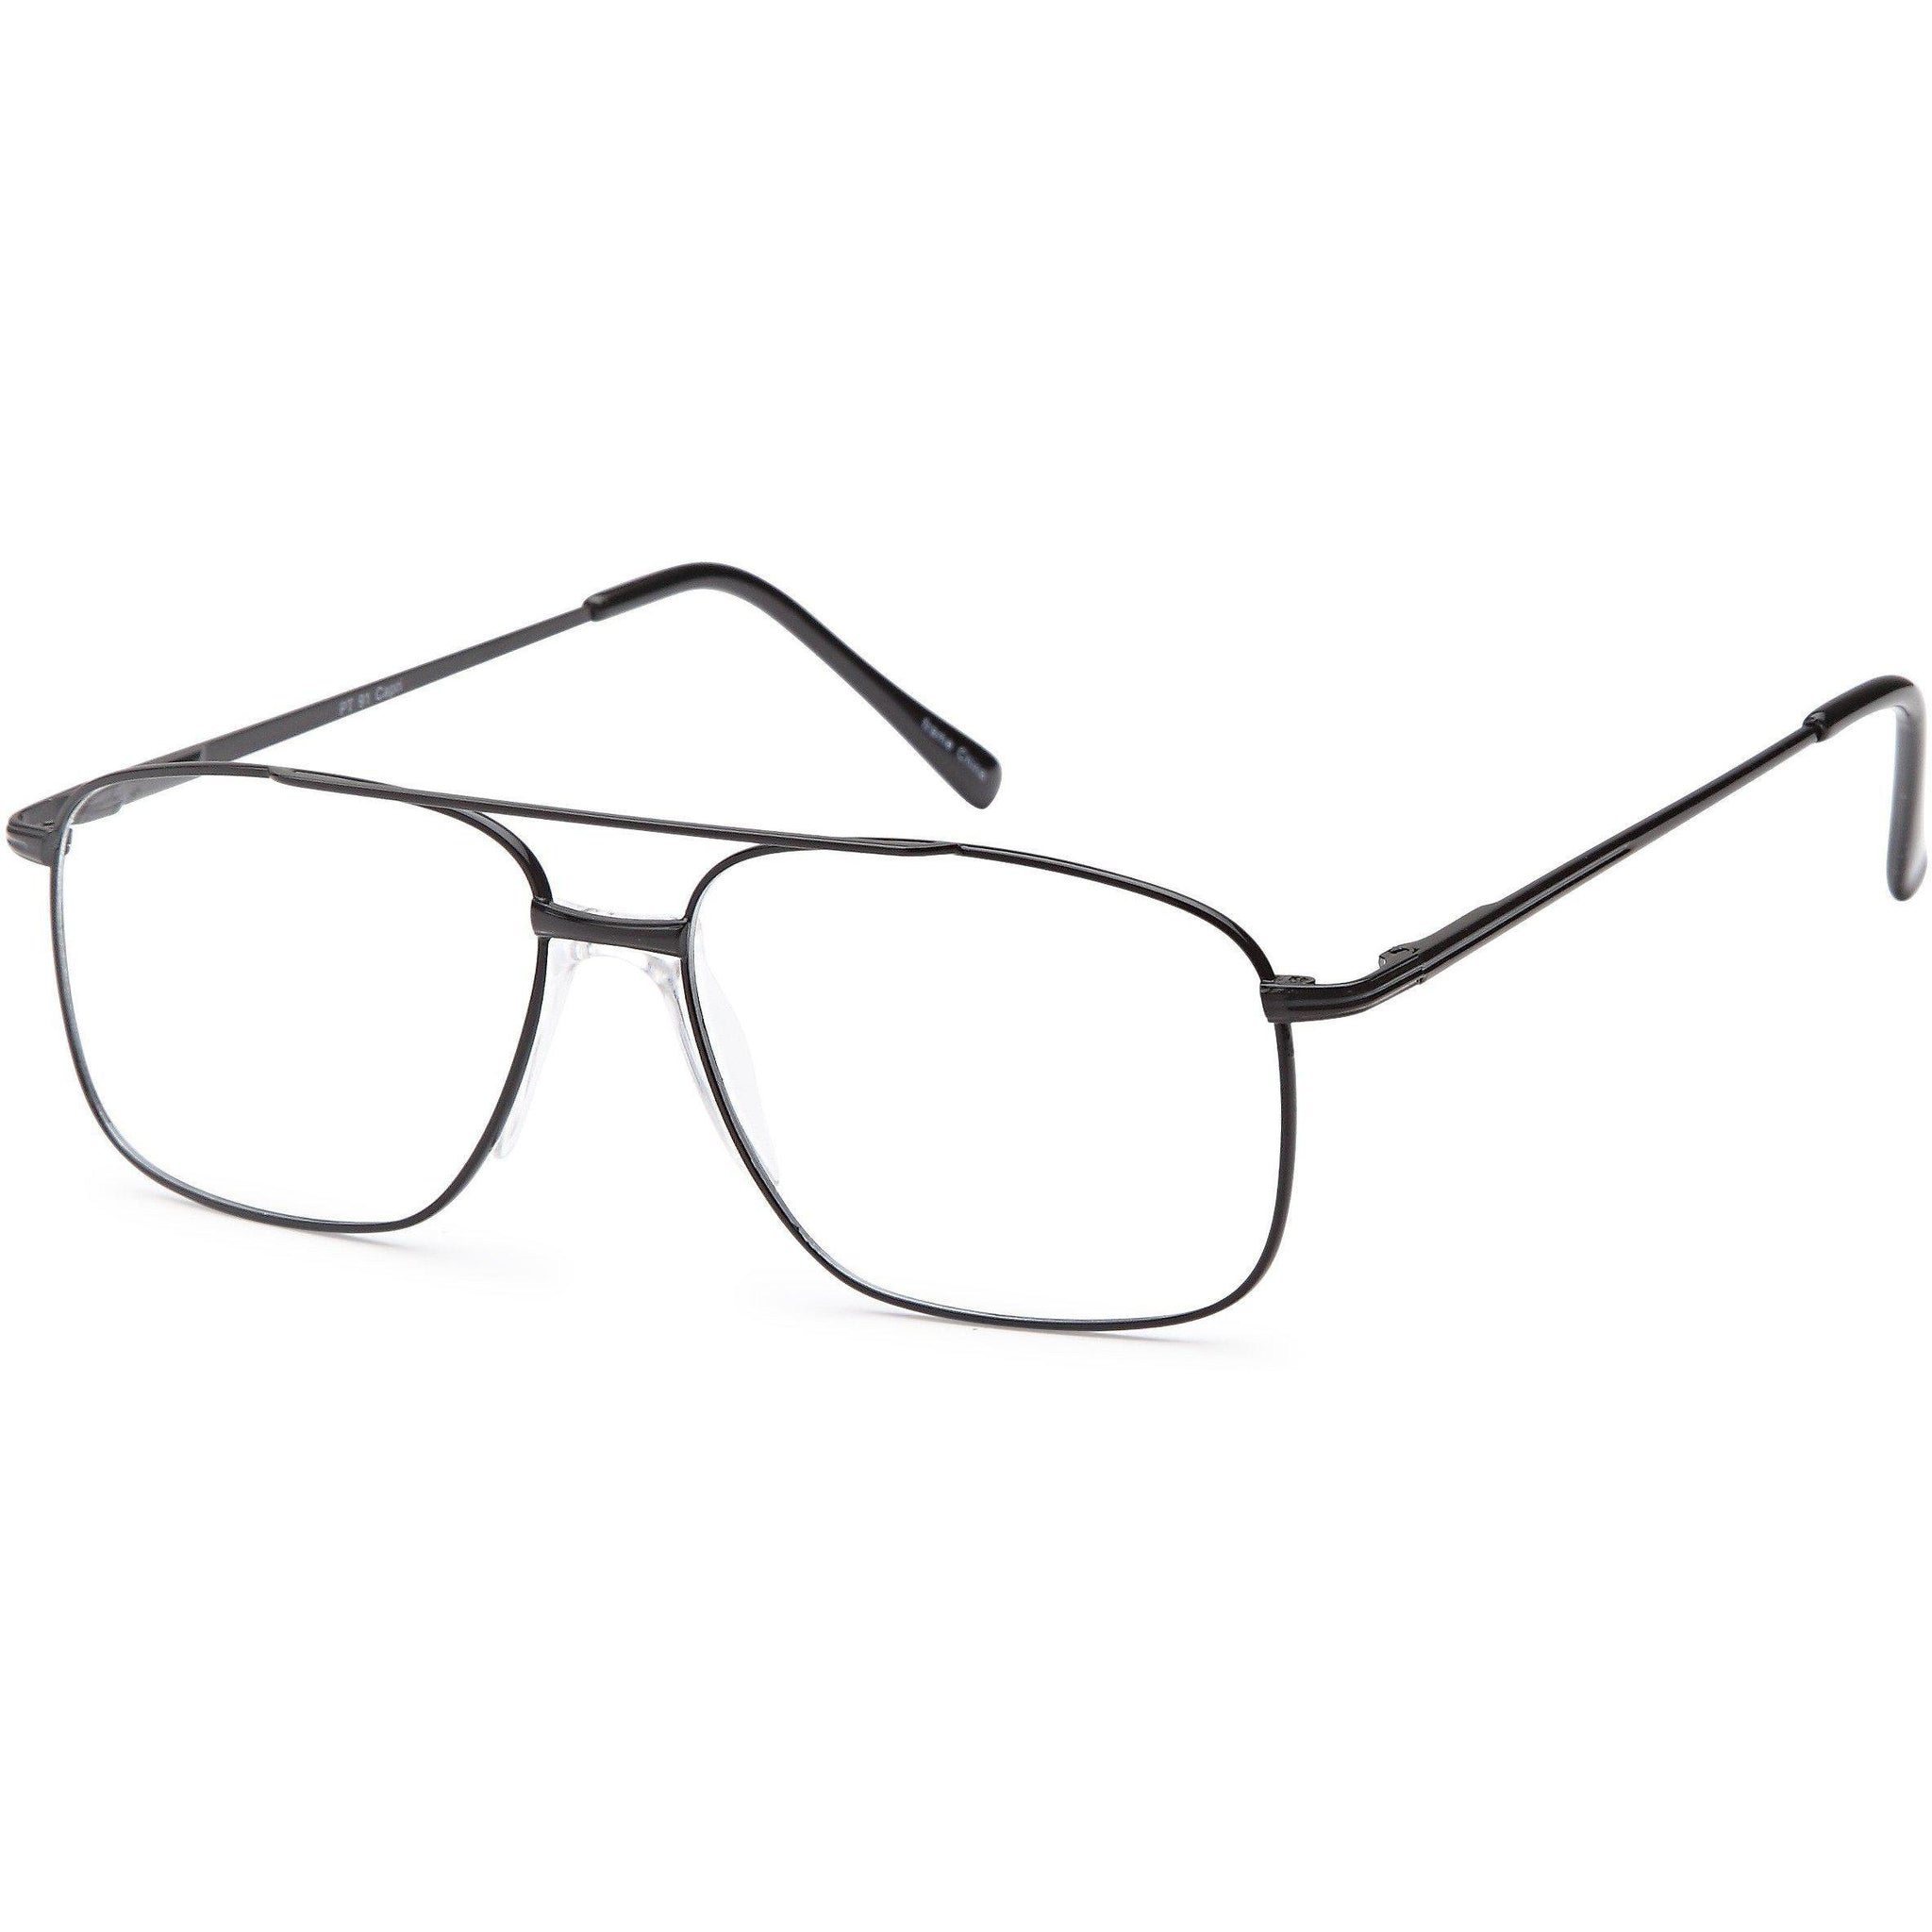 Appletree Prescription Glasses PT 91 Eyeglasses Frame